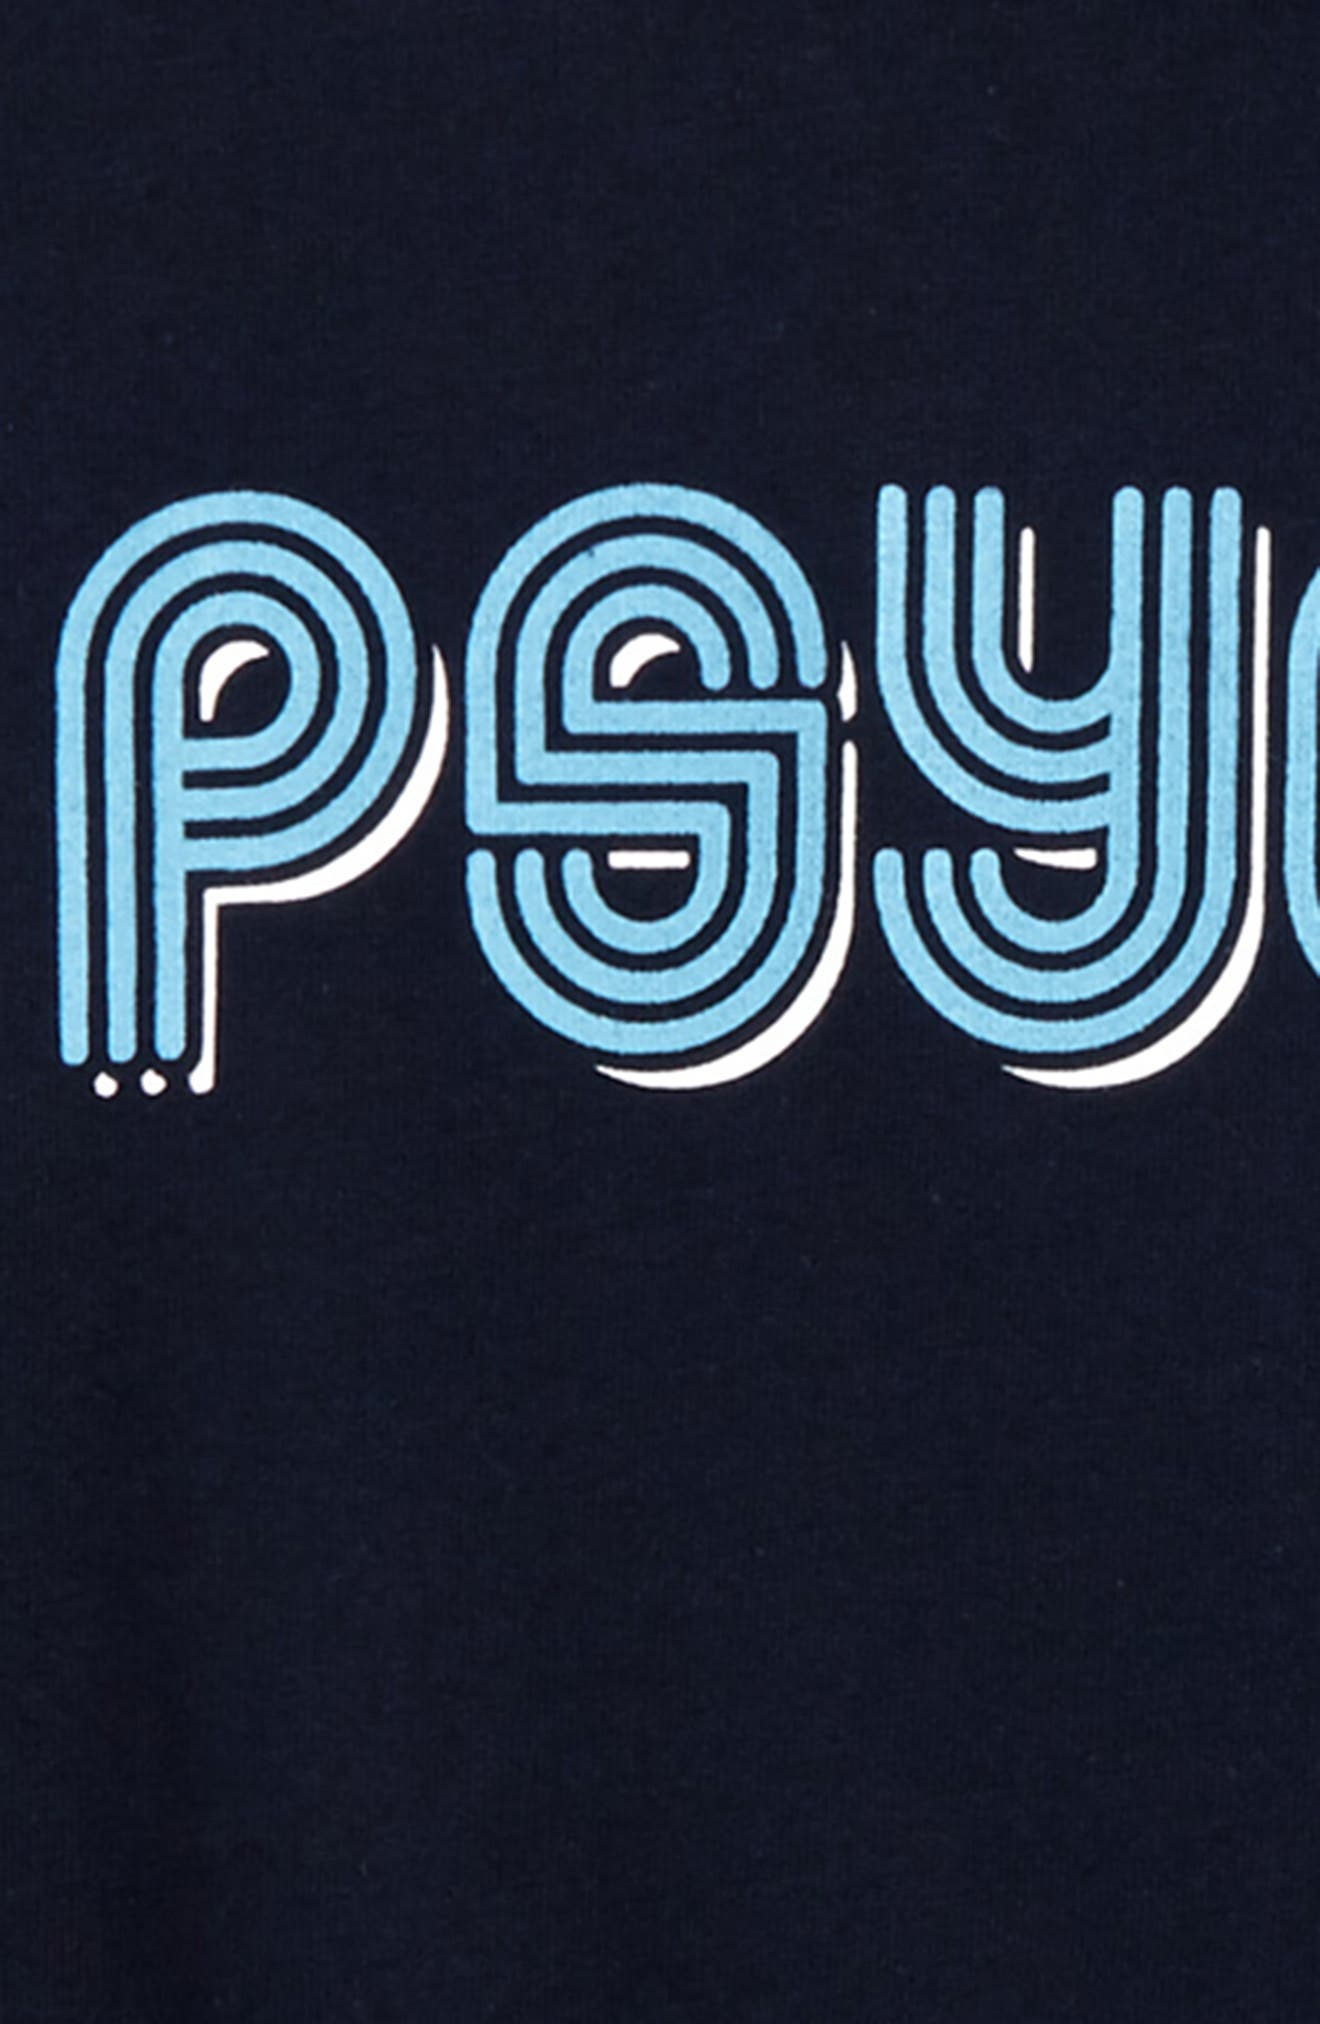 Psyched Print T-Shirt,                             Alternate thumbnail 2, color,                             Navy